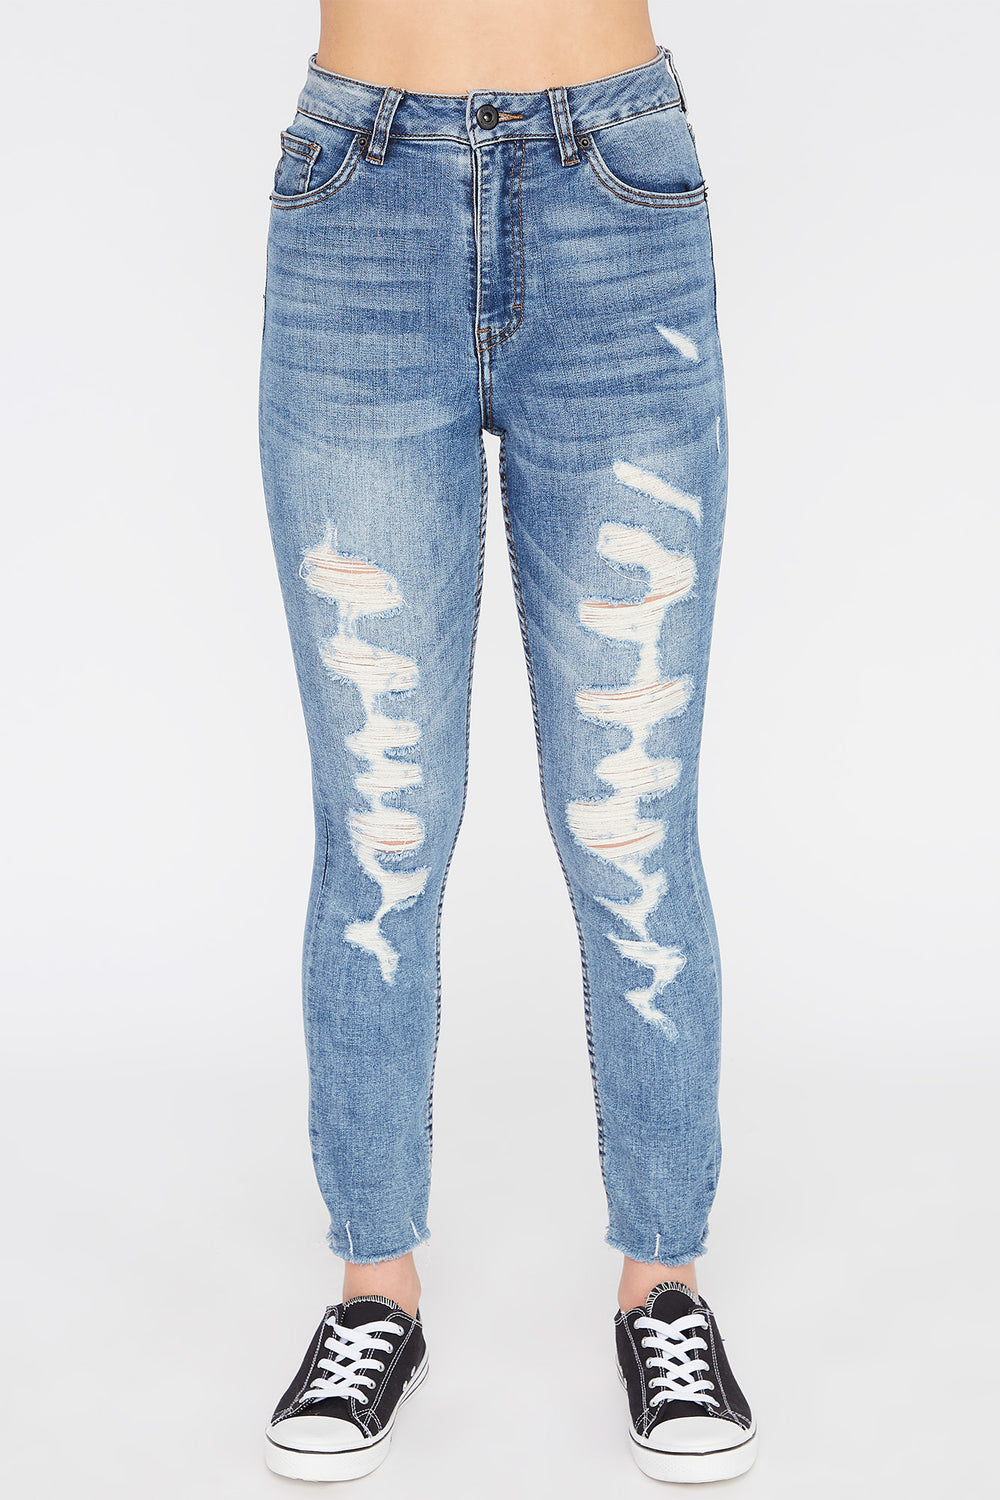 Zoo York Womens Distressed High Waisted Jeans Medium Blue